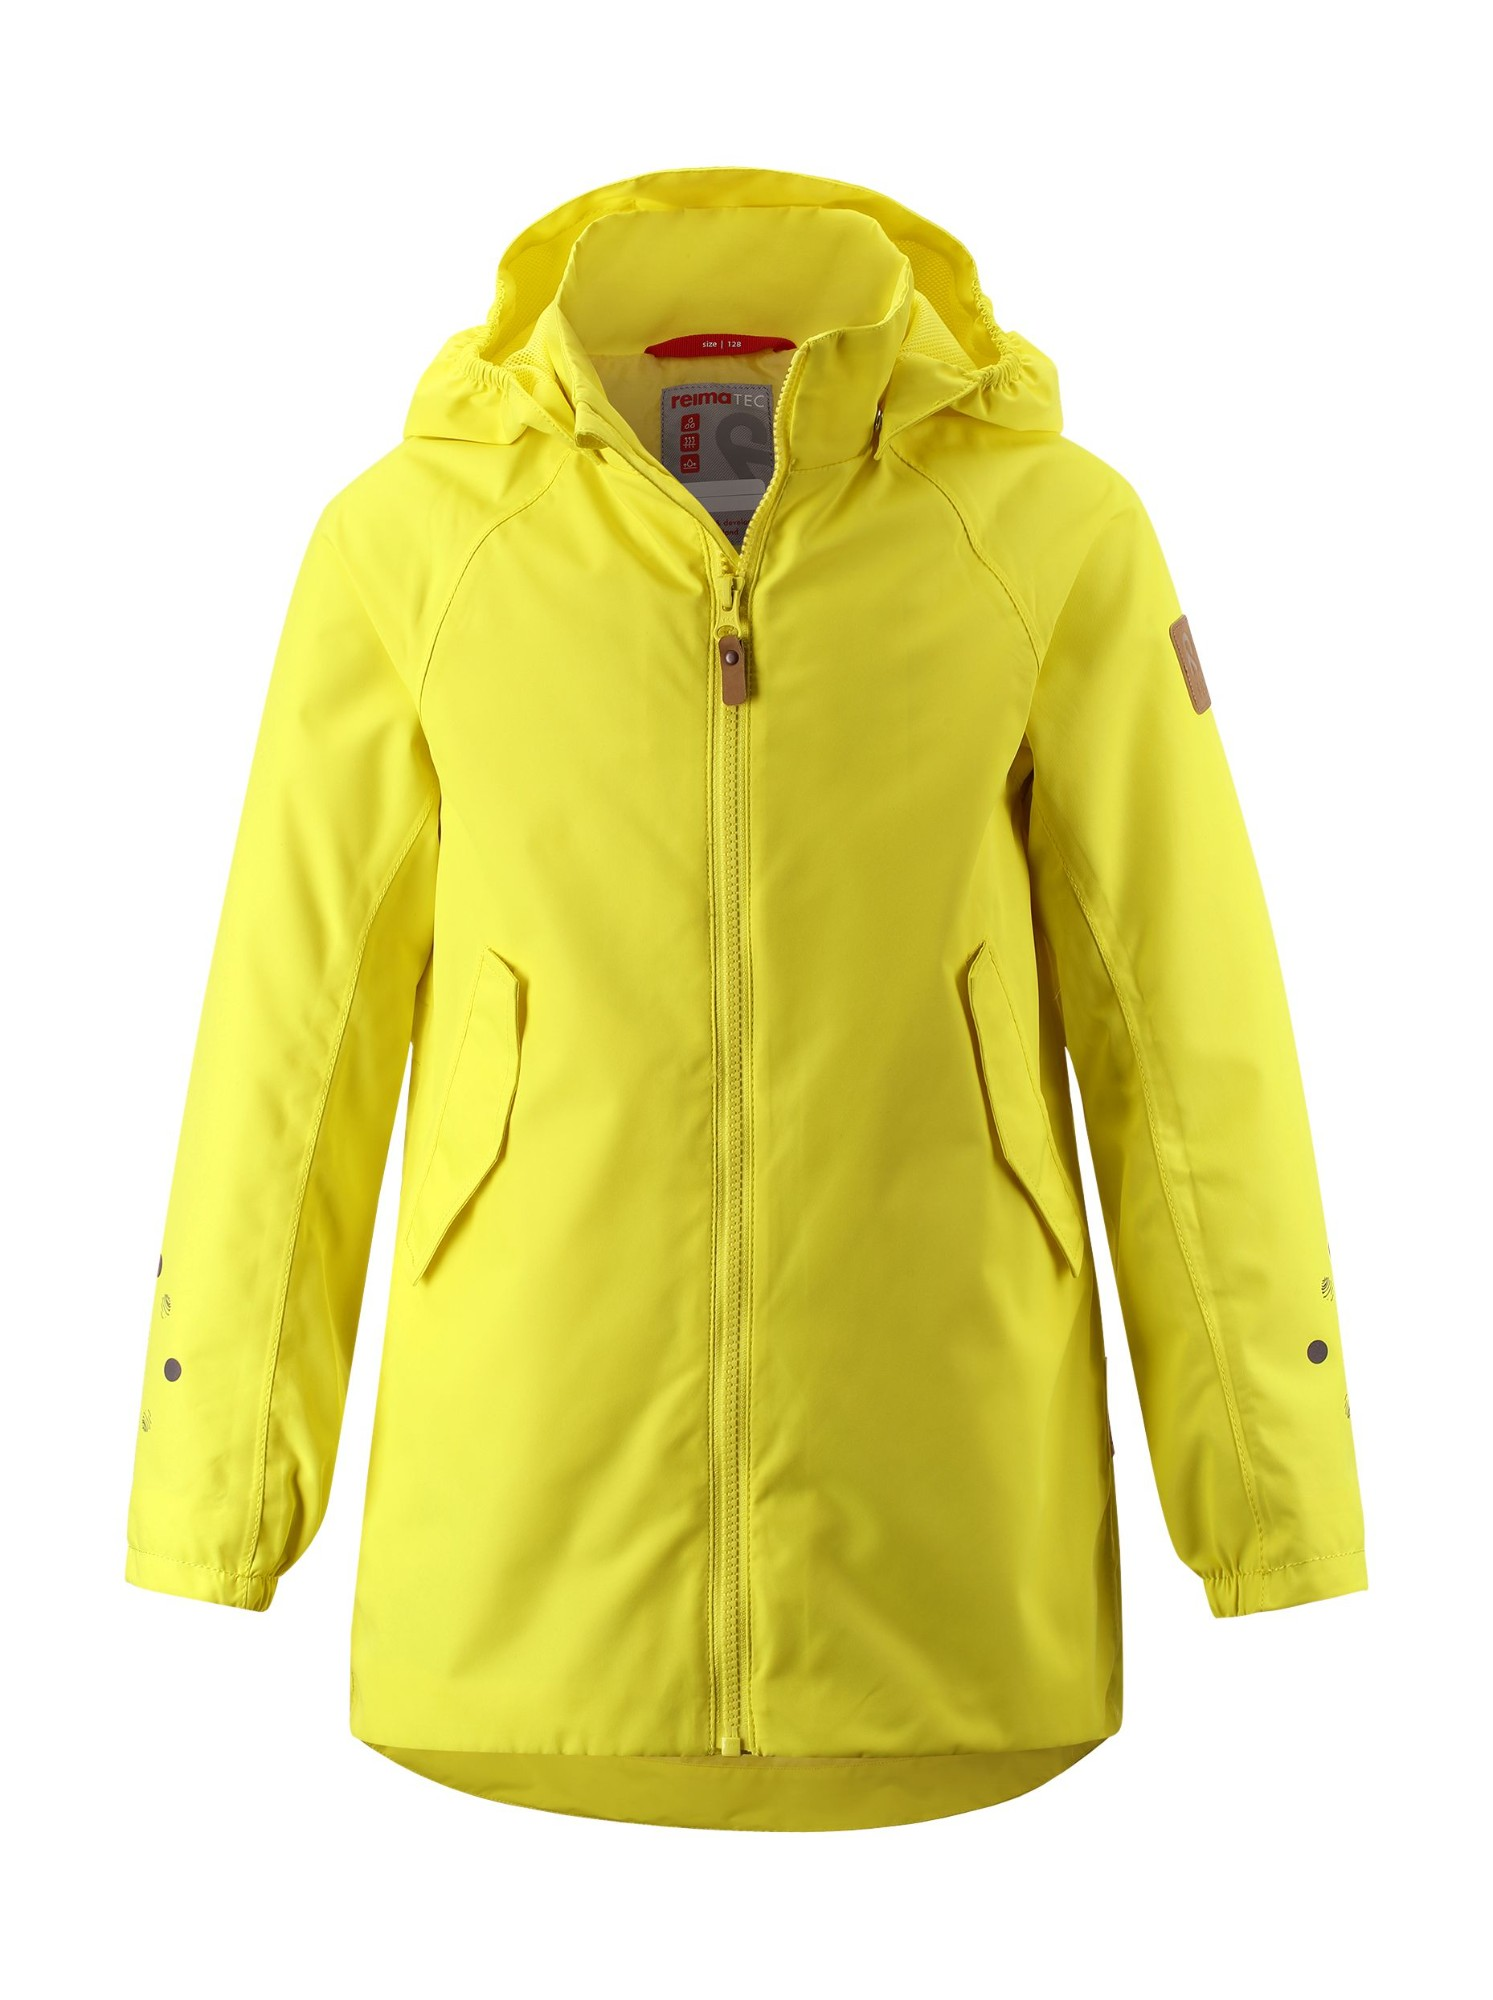 REIMA Galtby Lemon Yellow 152